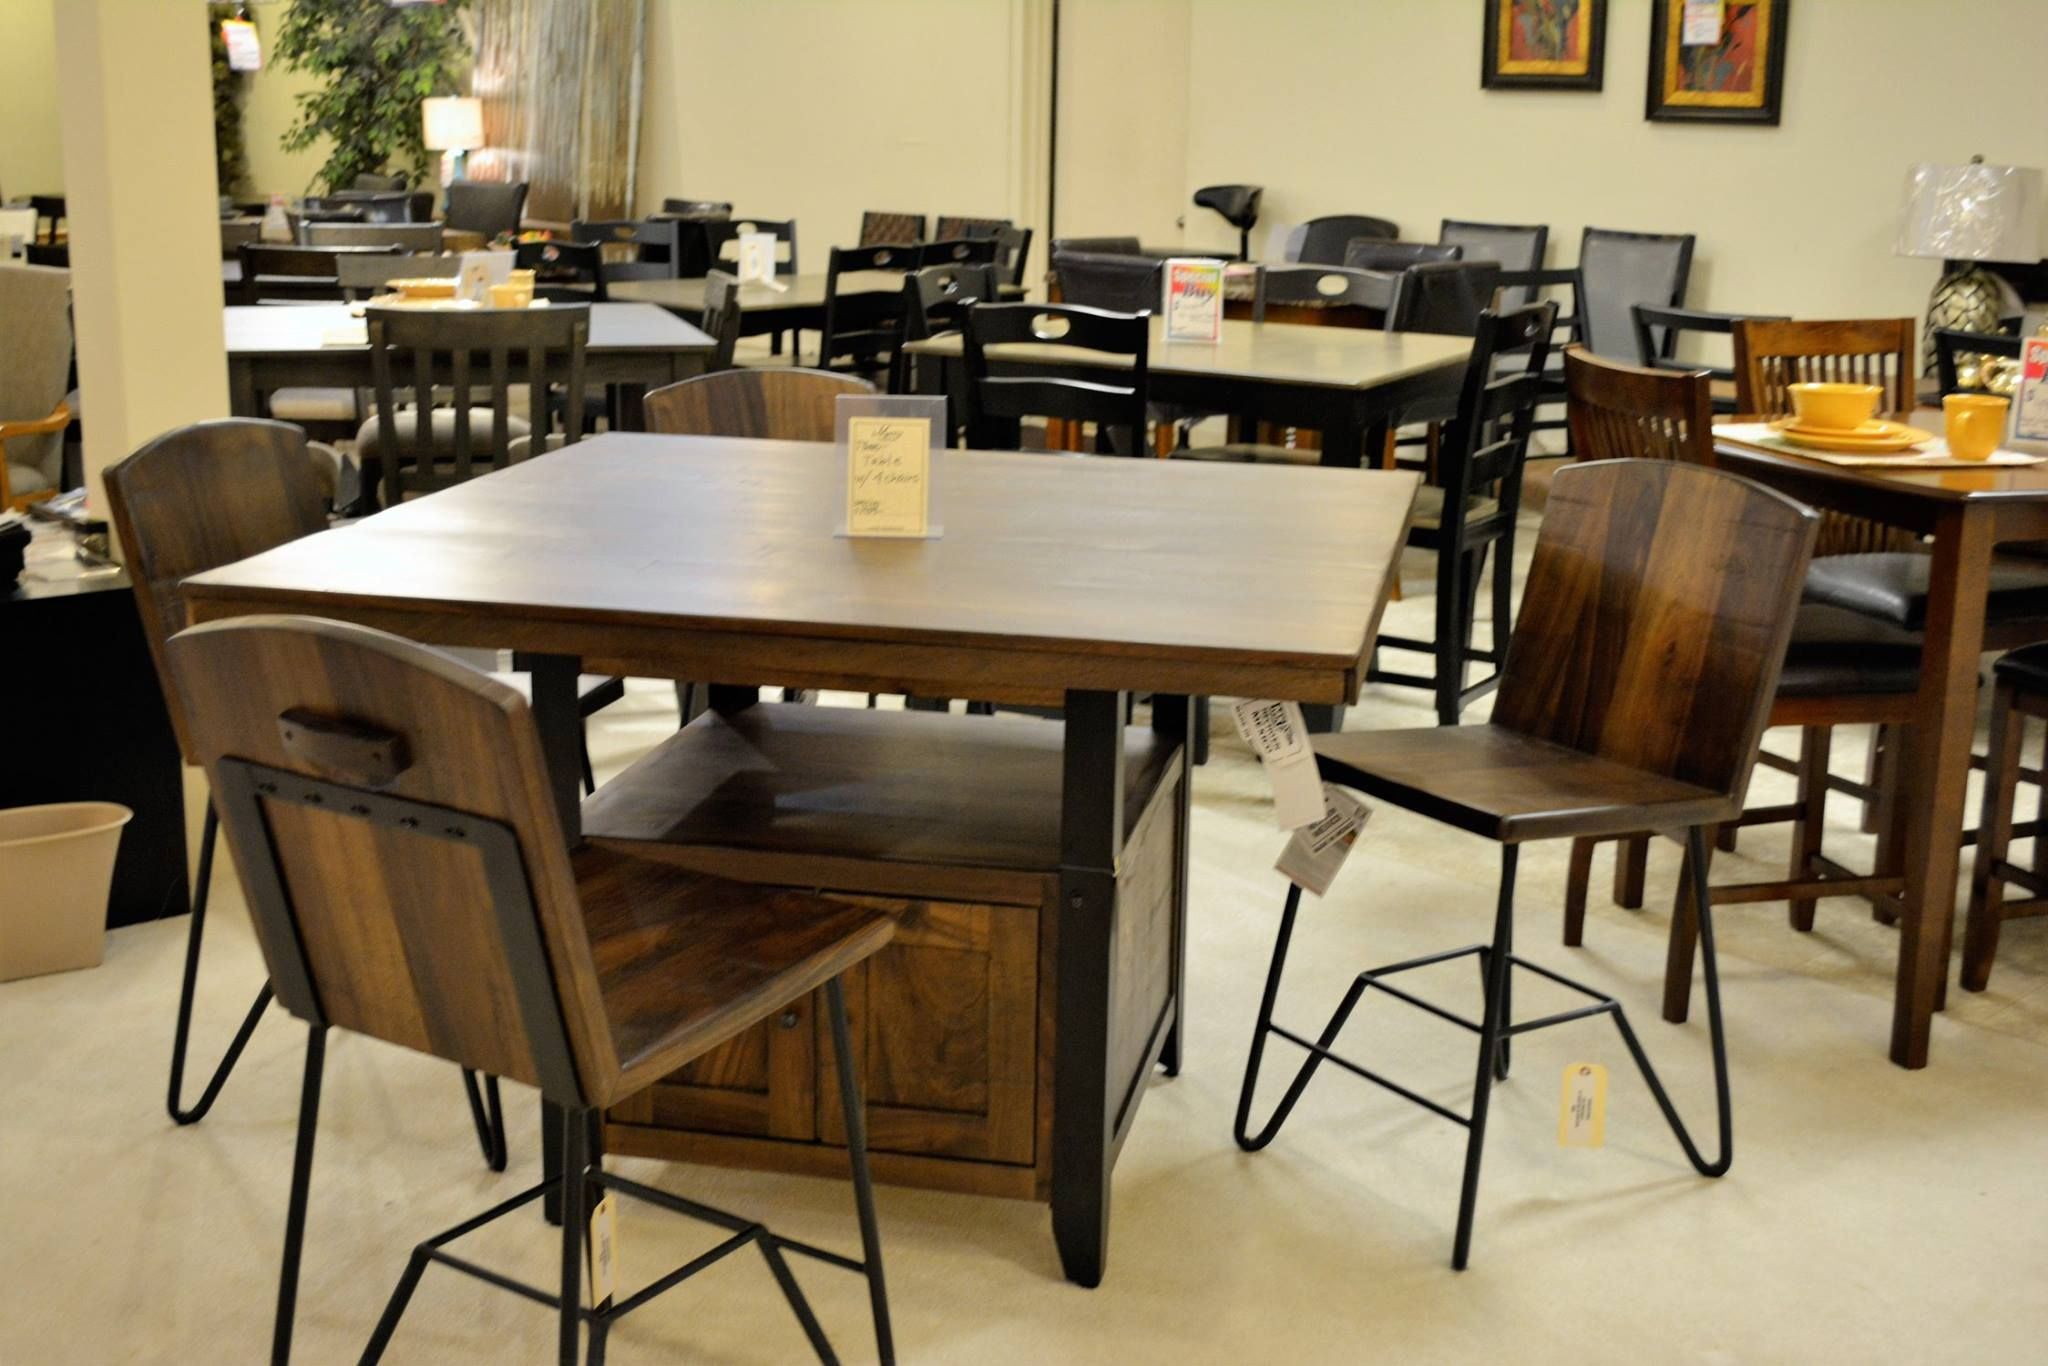 Dining Table, Dining Room, Dinning Table Set, Dining Room Table, Diner Table